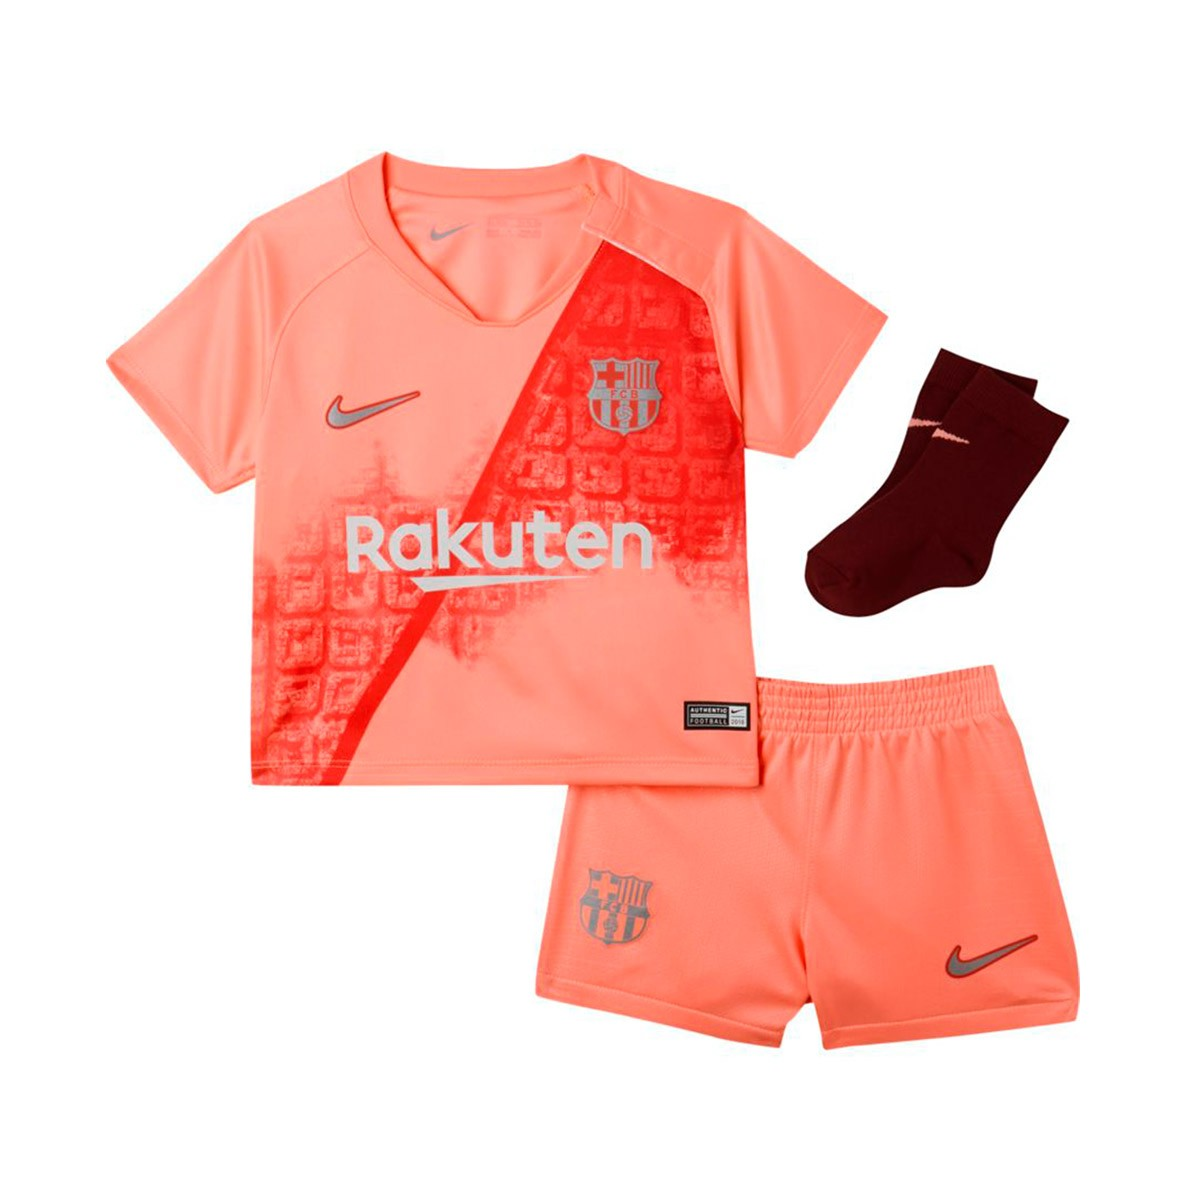 1a6e0e5240c Kit Nike Infant FC Barcelona 2018-2019 Third Light atomic pink ...